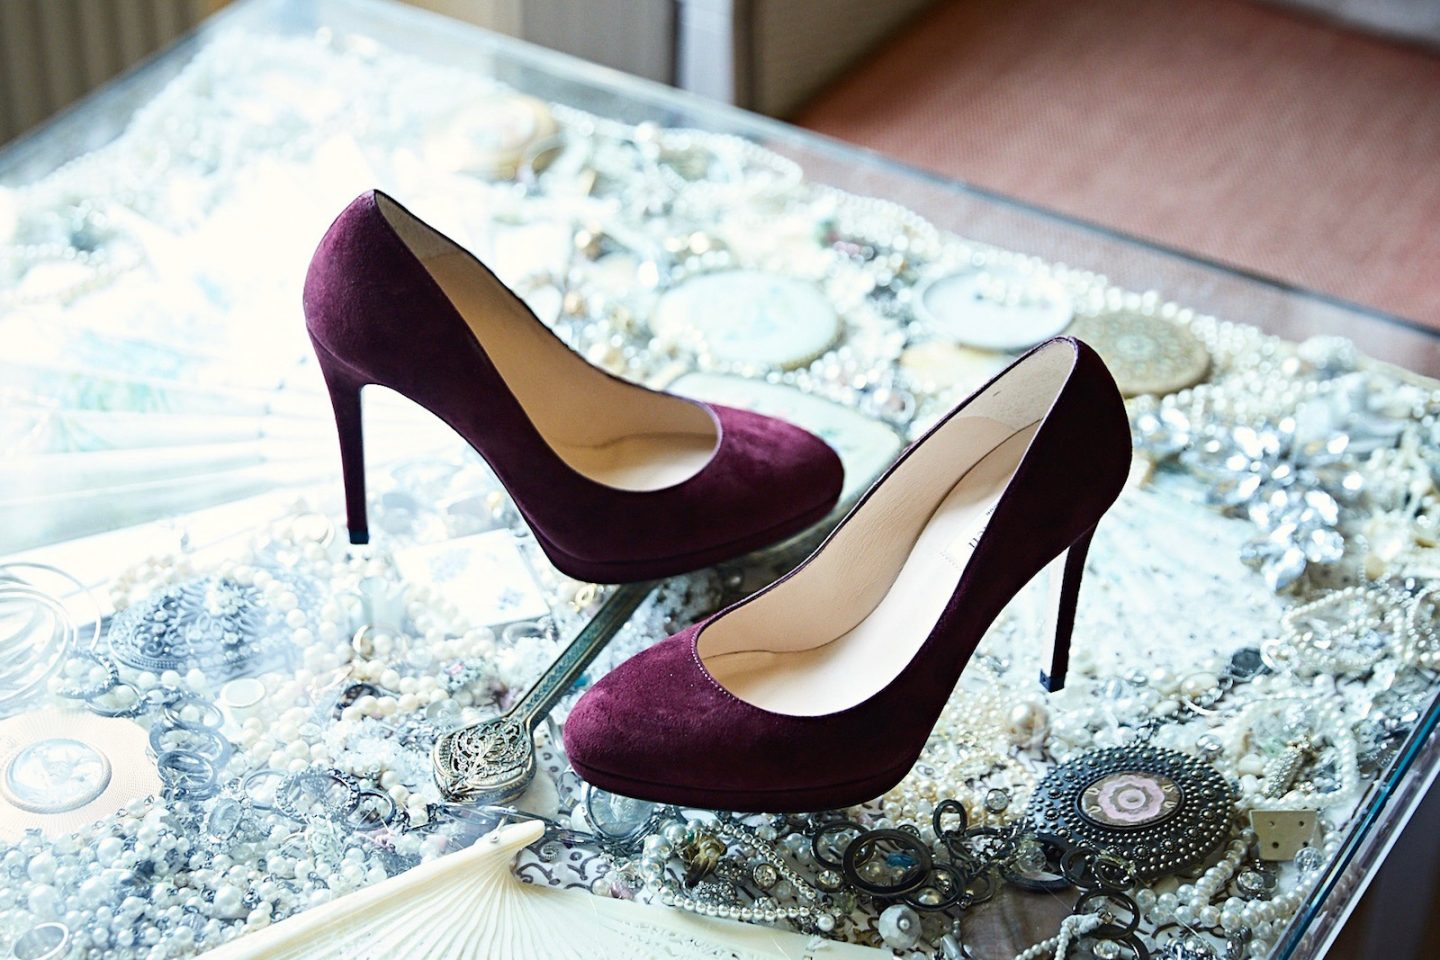 sledge oxblood court shoes lk bennett